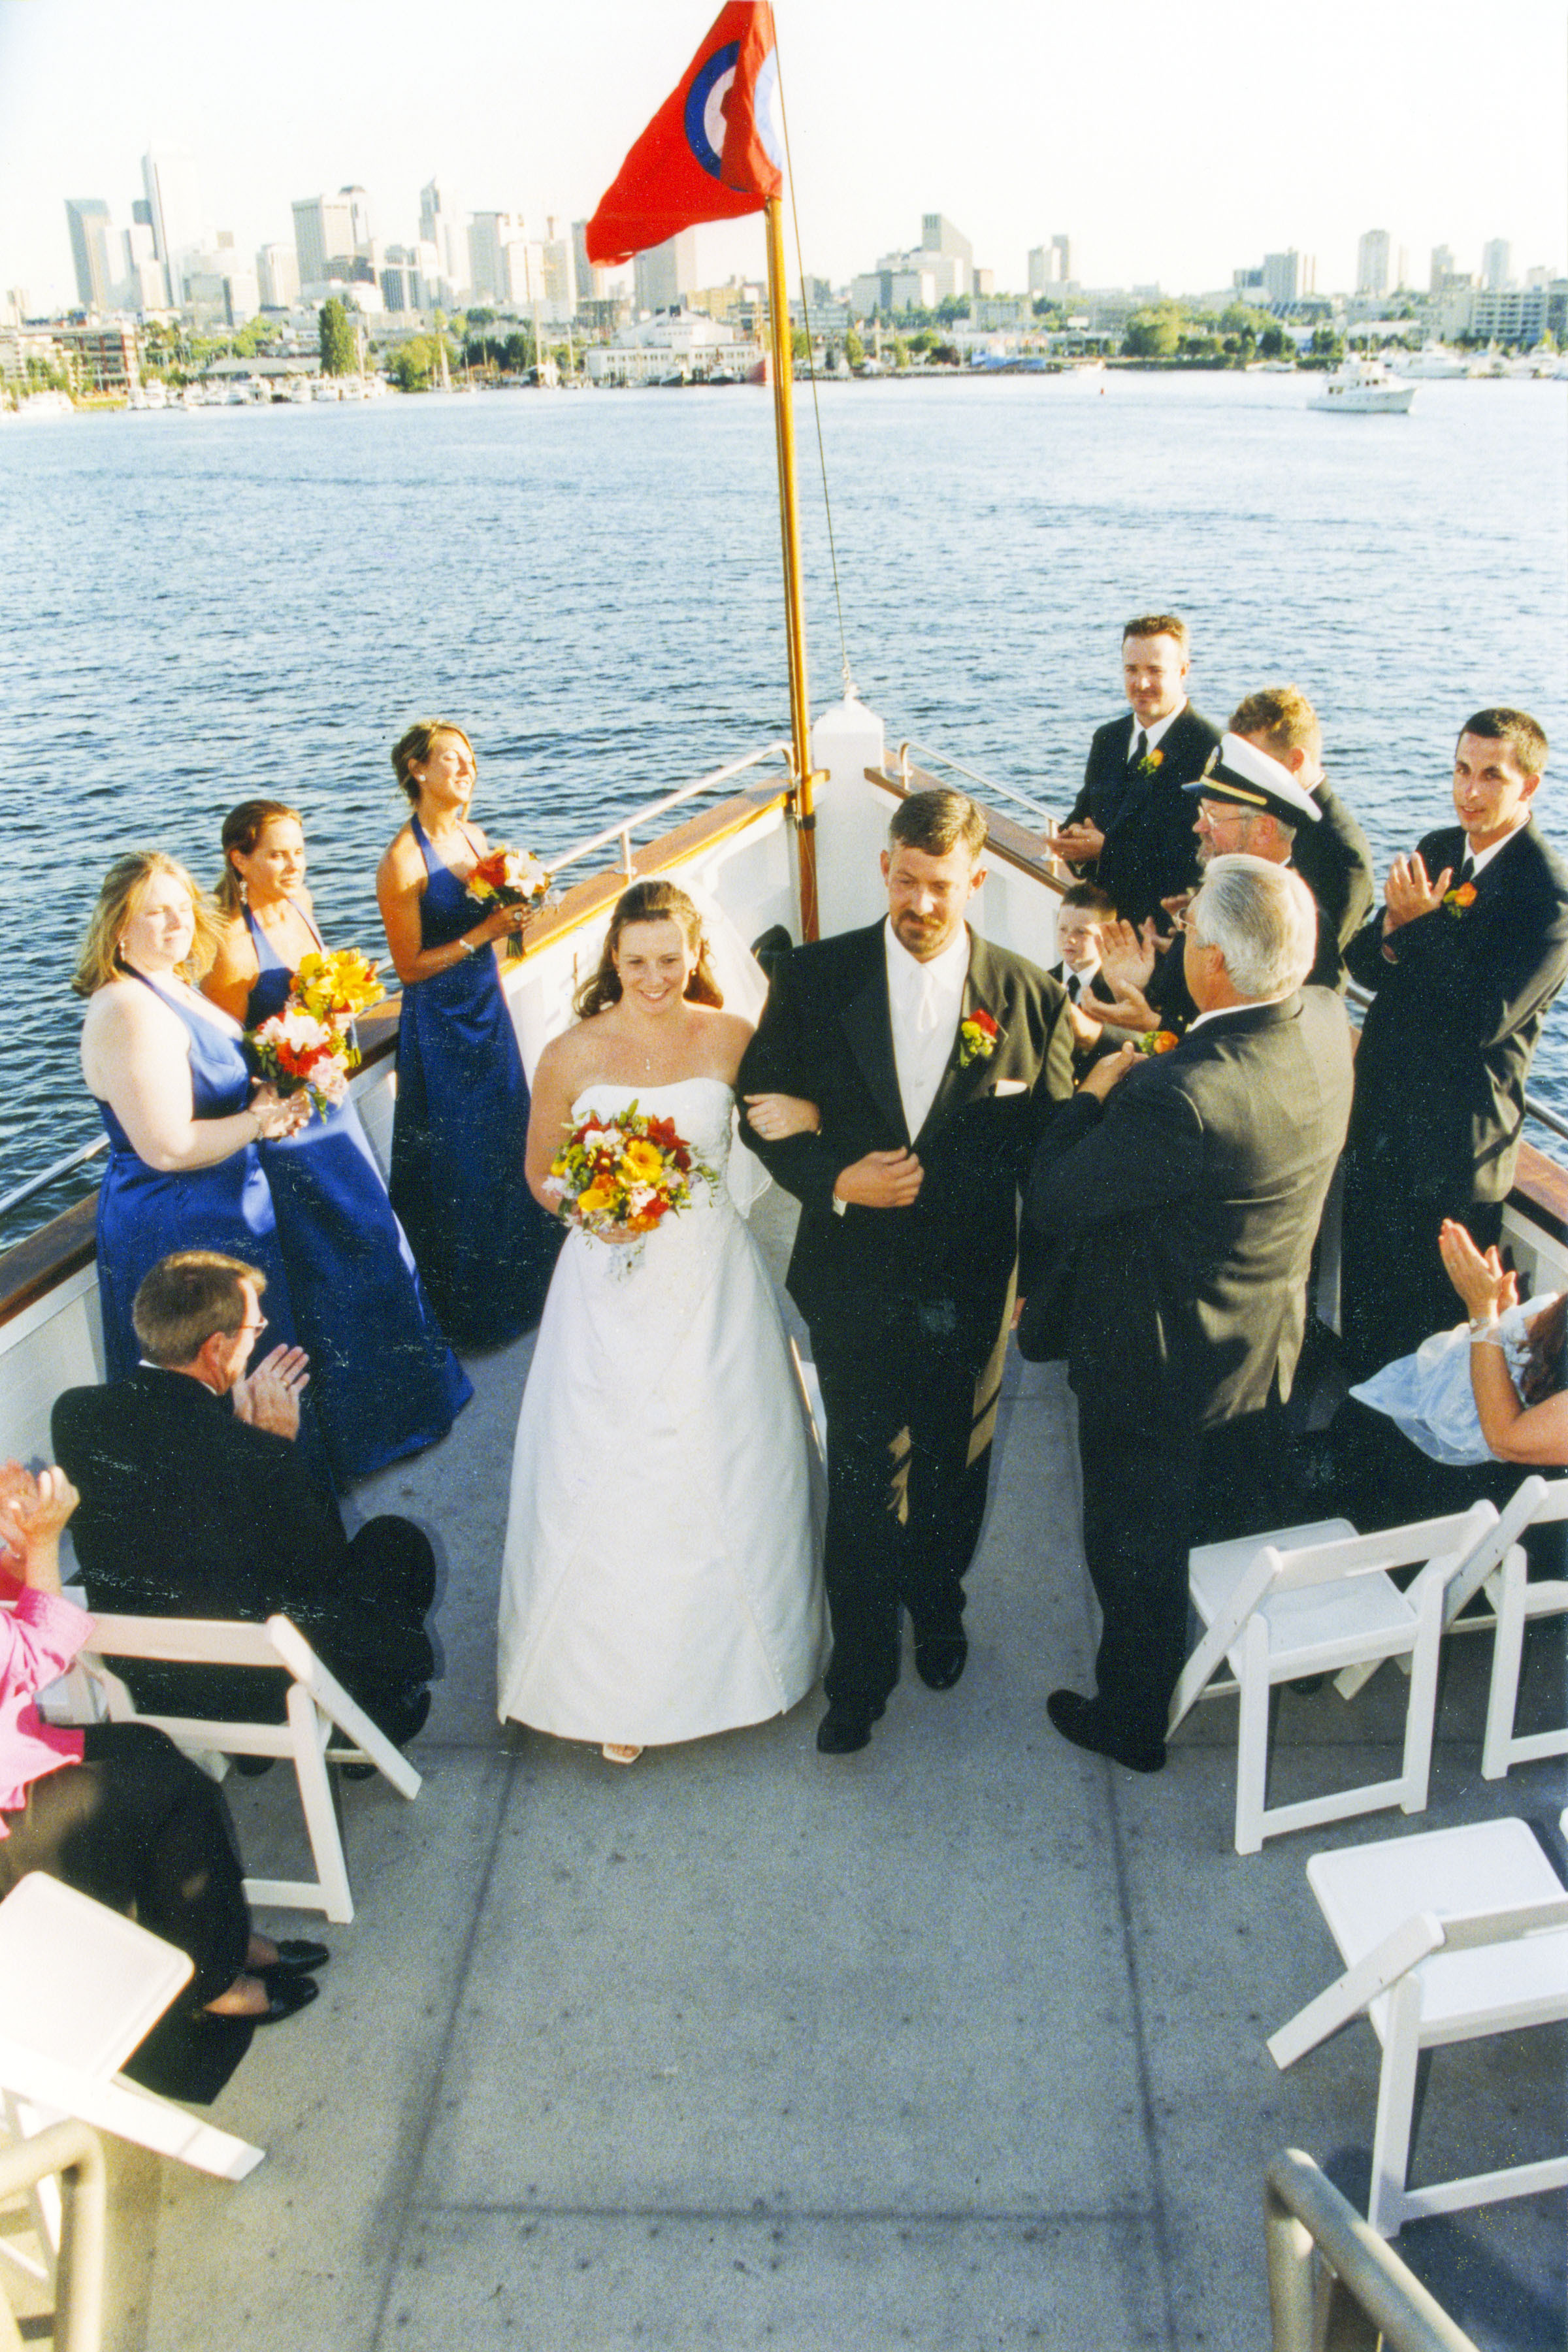 Ceremony, Flowers & Decor, Destinations, Cruise, Boat, Ship, Virginia v steamship